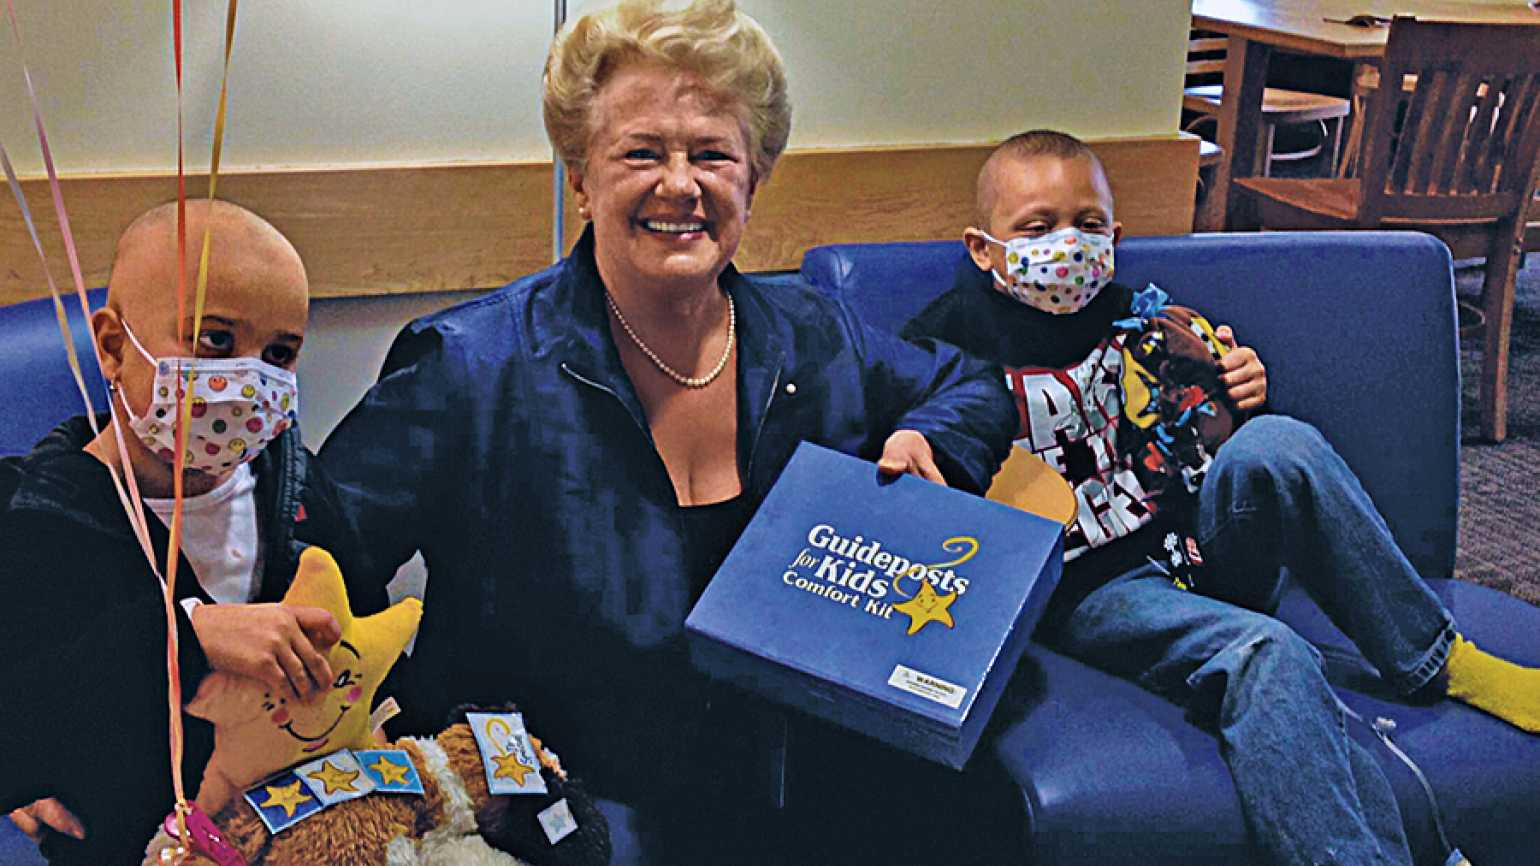 Chaplain Gentile distributes Guideposts Comfort Kits to sick children